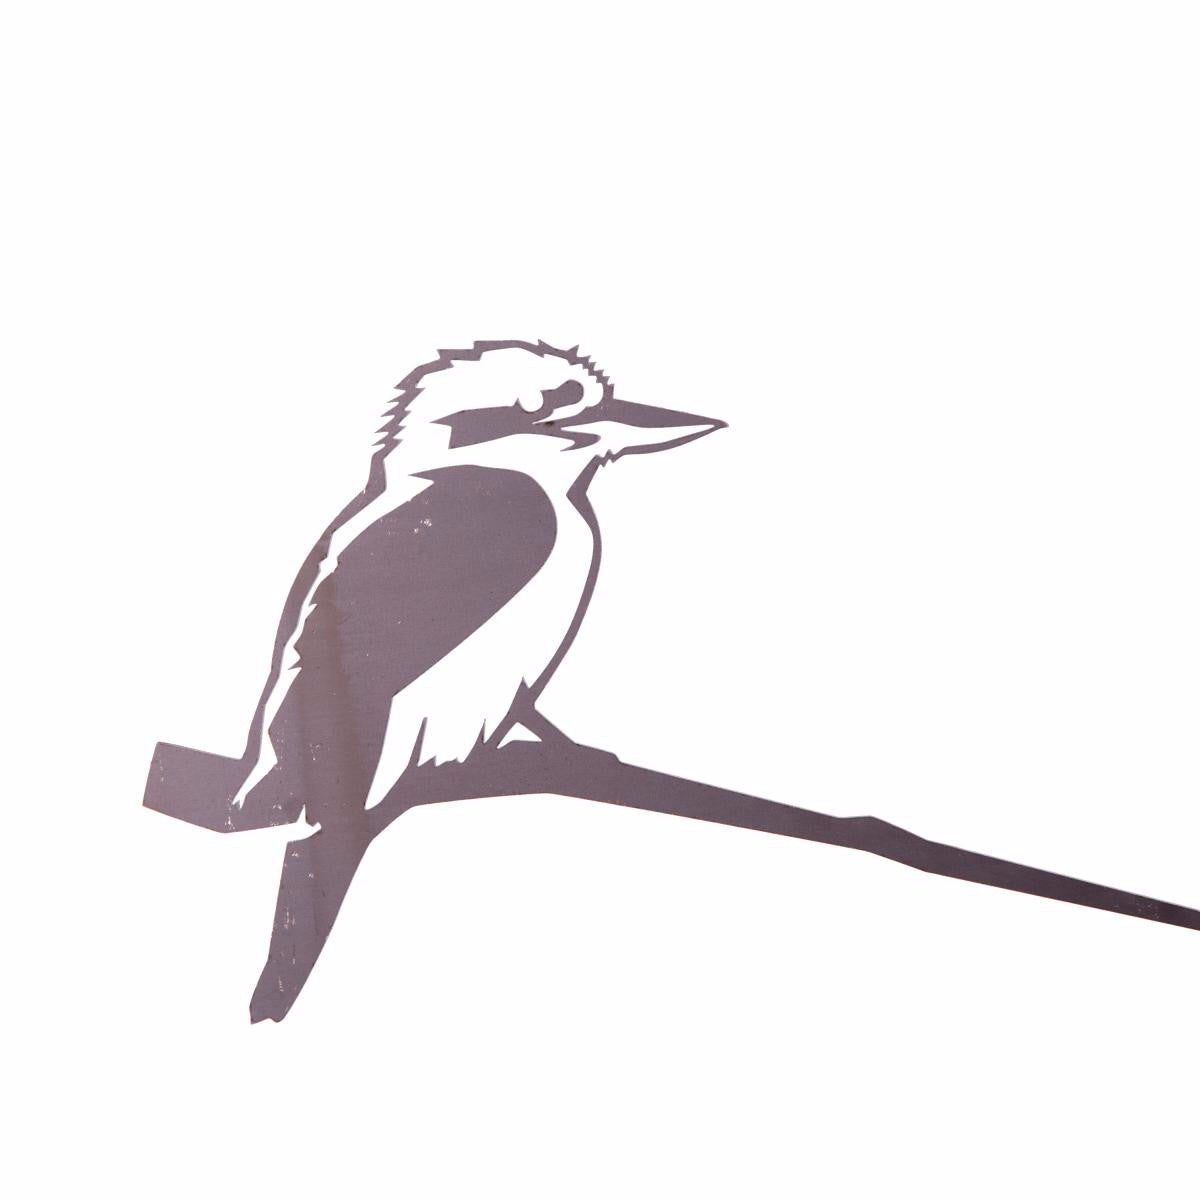 Metalbird - Kookaburra - Metalbird - Throw Some Seeds - Australian gardening gifts and eco products online!